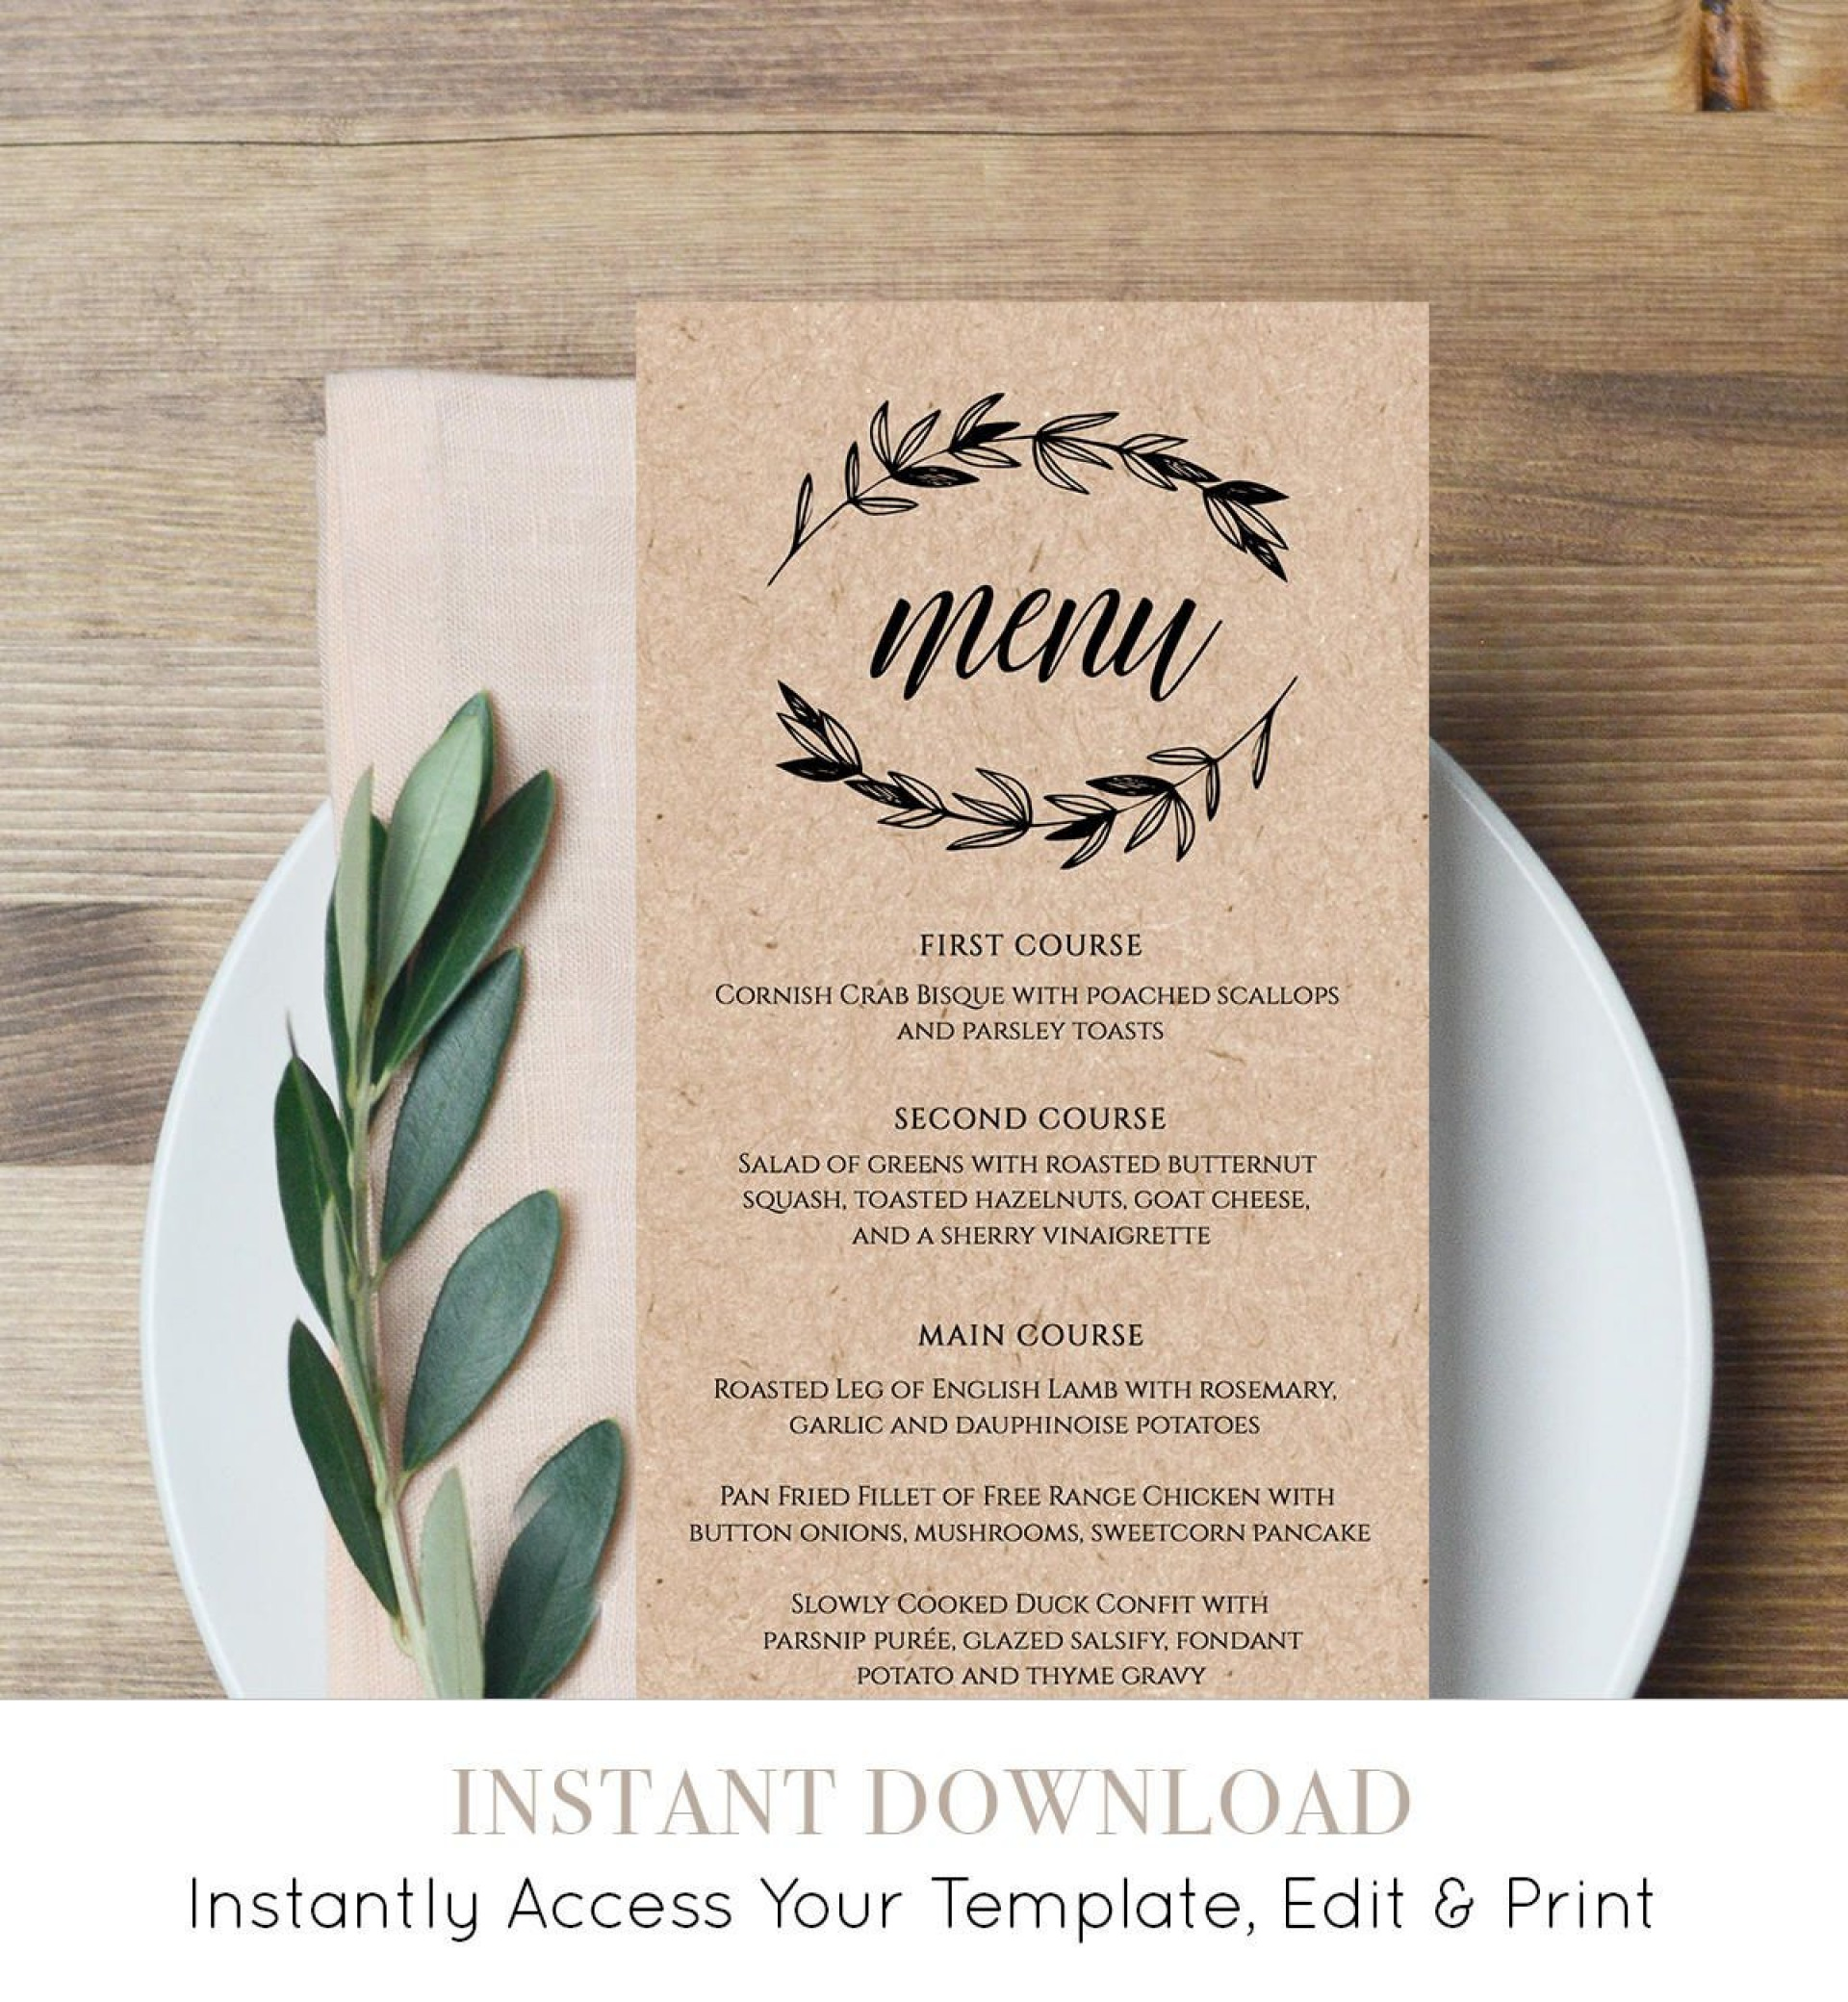 008 Dreaded Free Printable Menu Template High Def  For Dinner Party Family1920